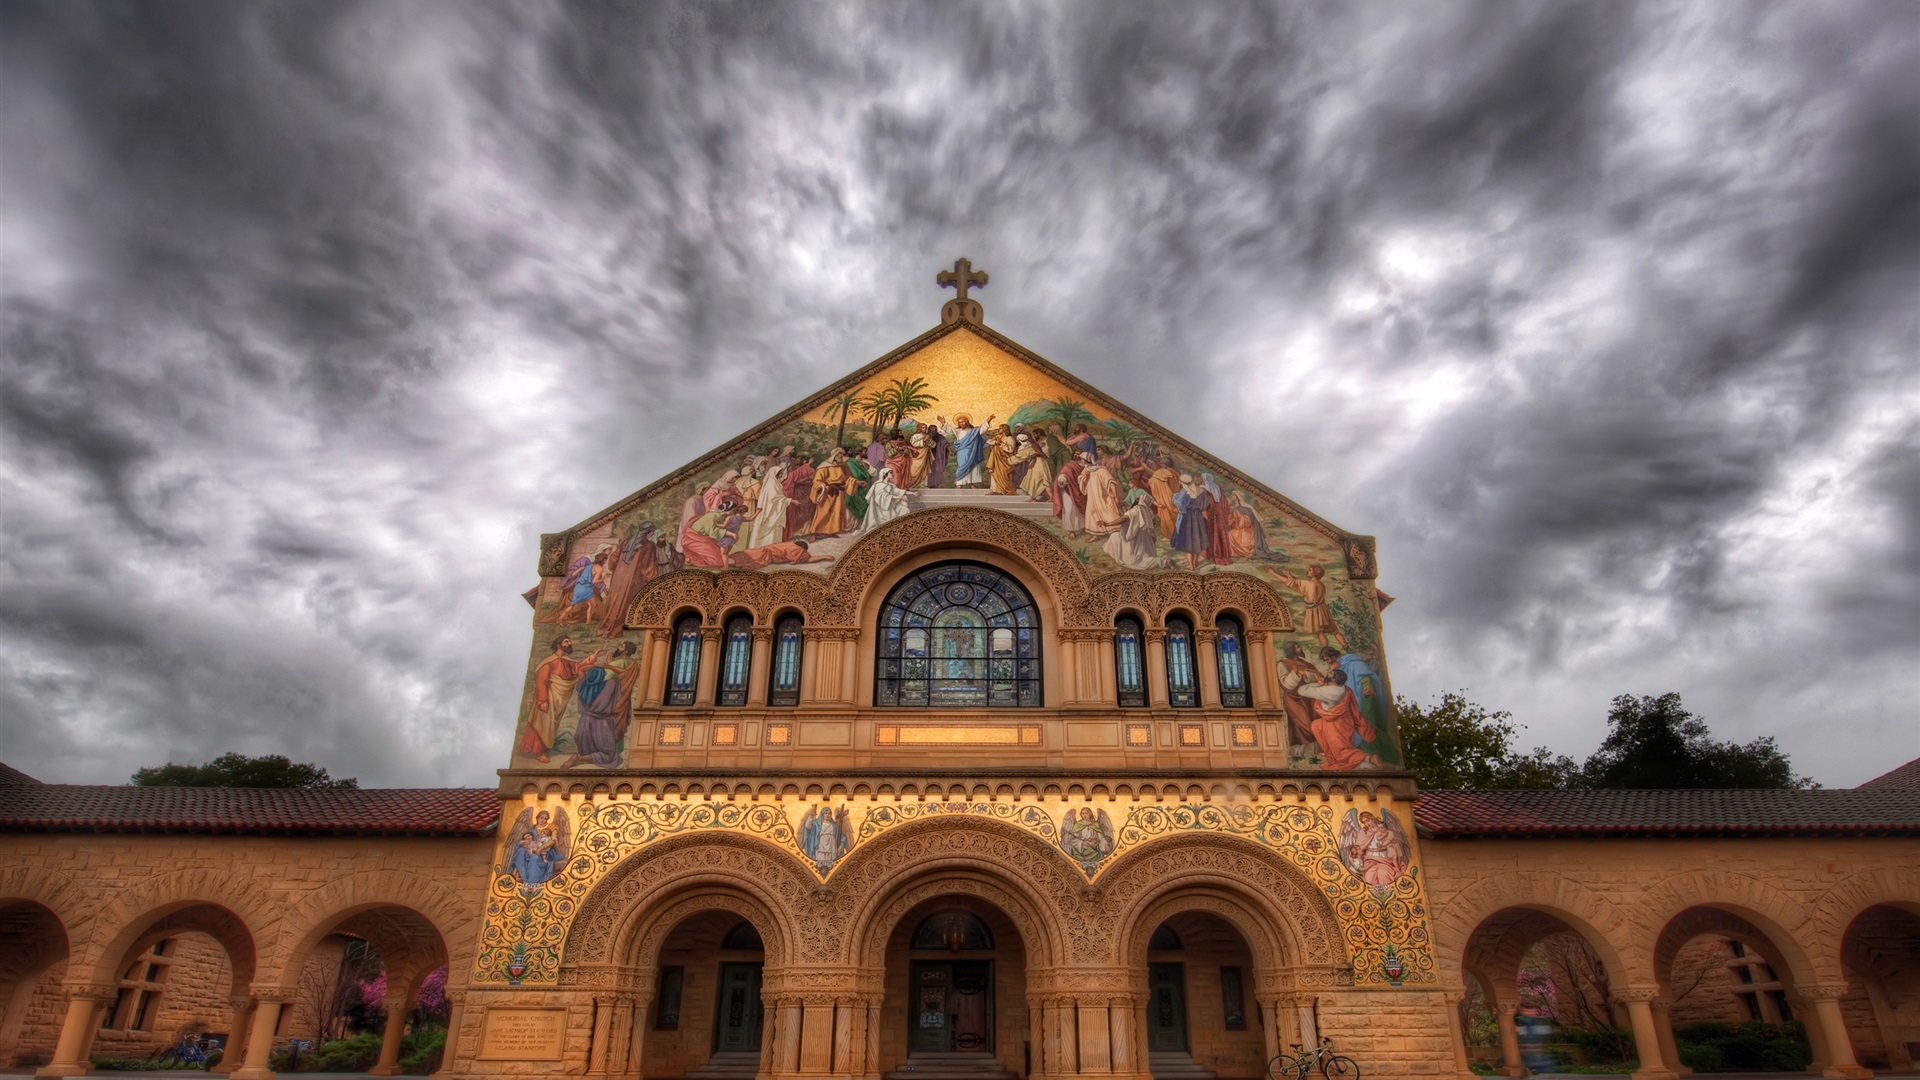 Stanford church painting mural street clouds wallpaper for Church mural painting